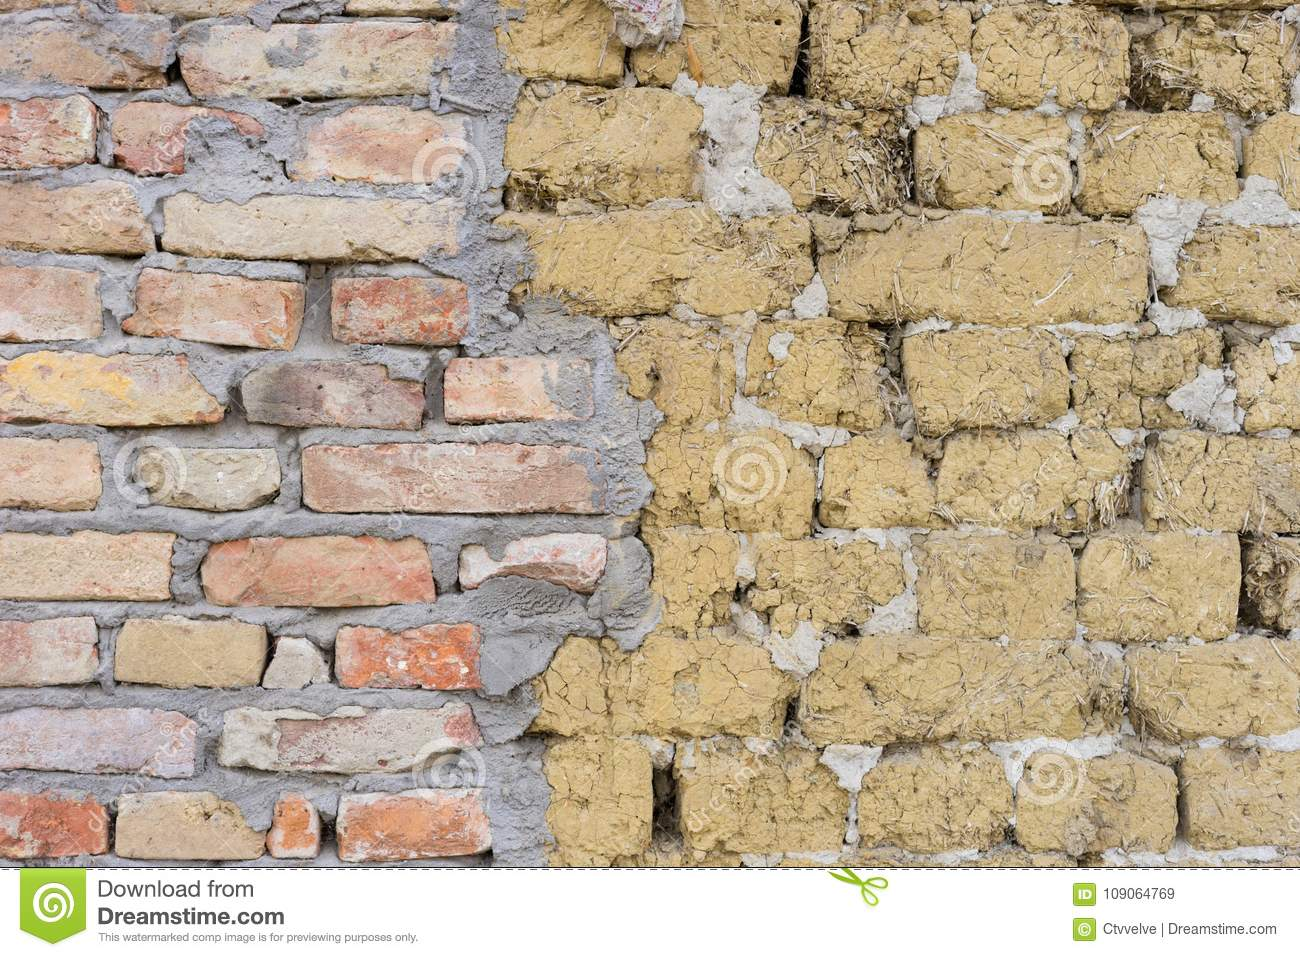 Adobe and red brick wall stock image  Image of crack - 109064769